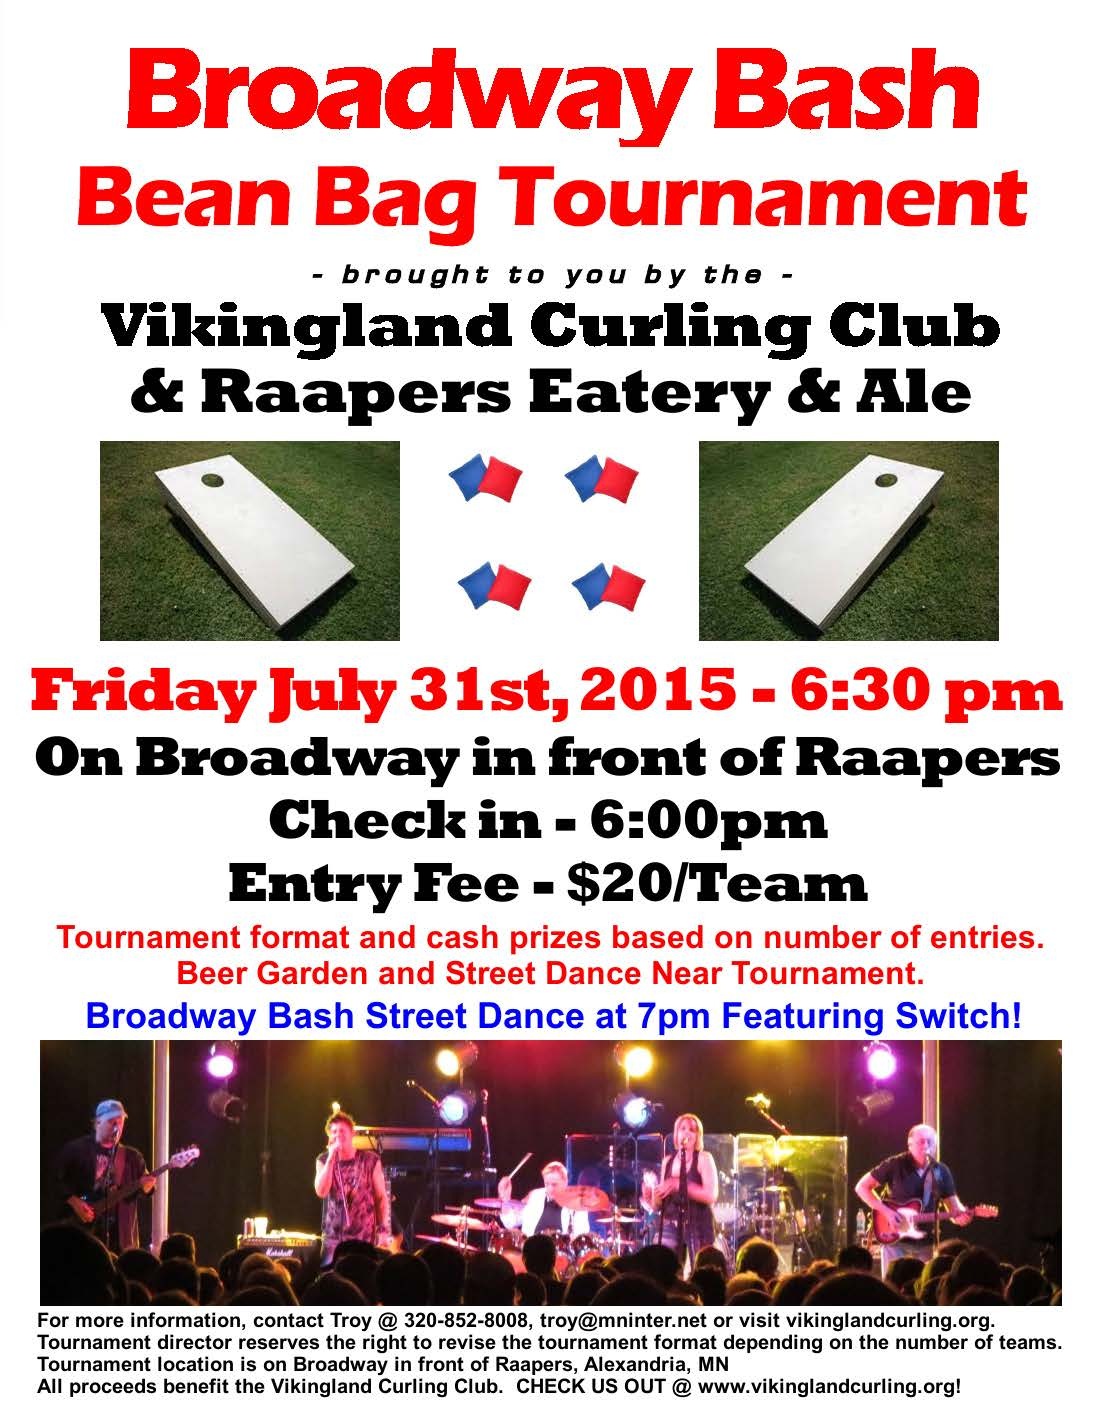 2015 VCC Broadway Party Bean Bag Tourney (2)